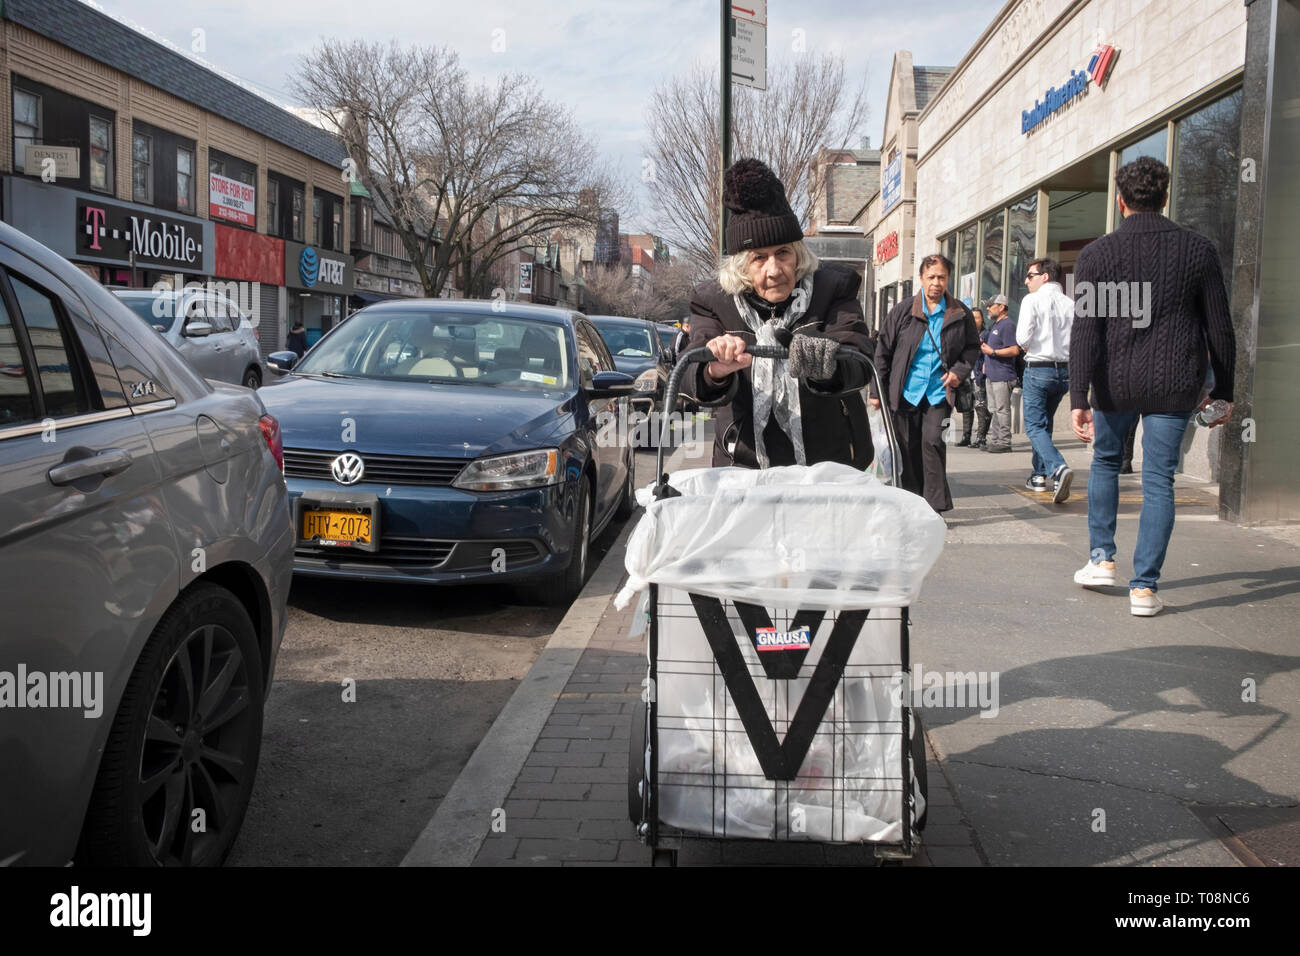 An older woman in a knit hat pushing a shopping cart on 82nd St. in Jackson Heights, Queens, NYC near the #7 train . - Stock Image